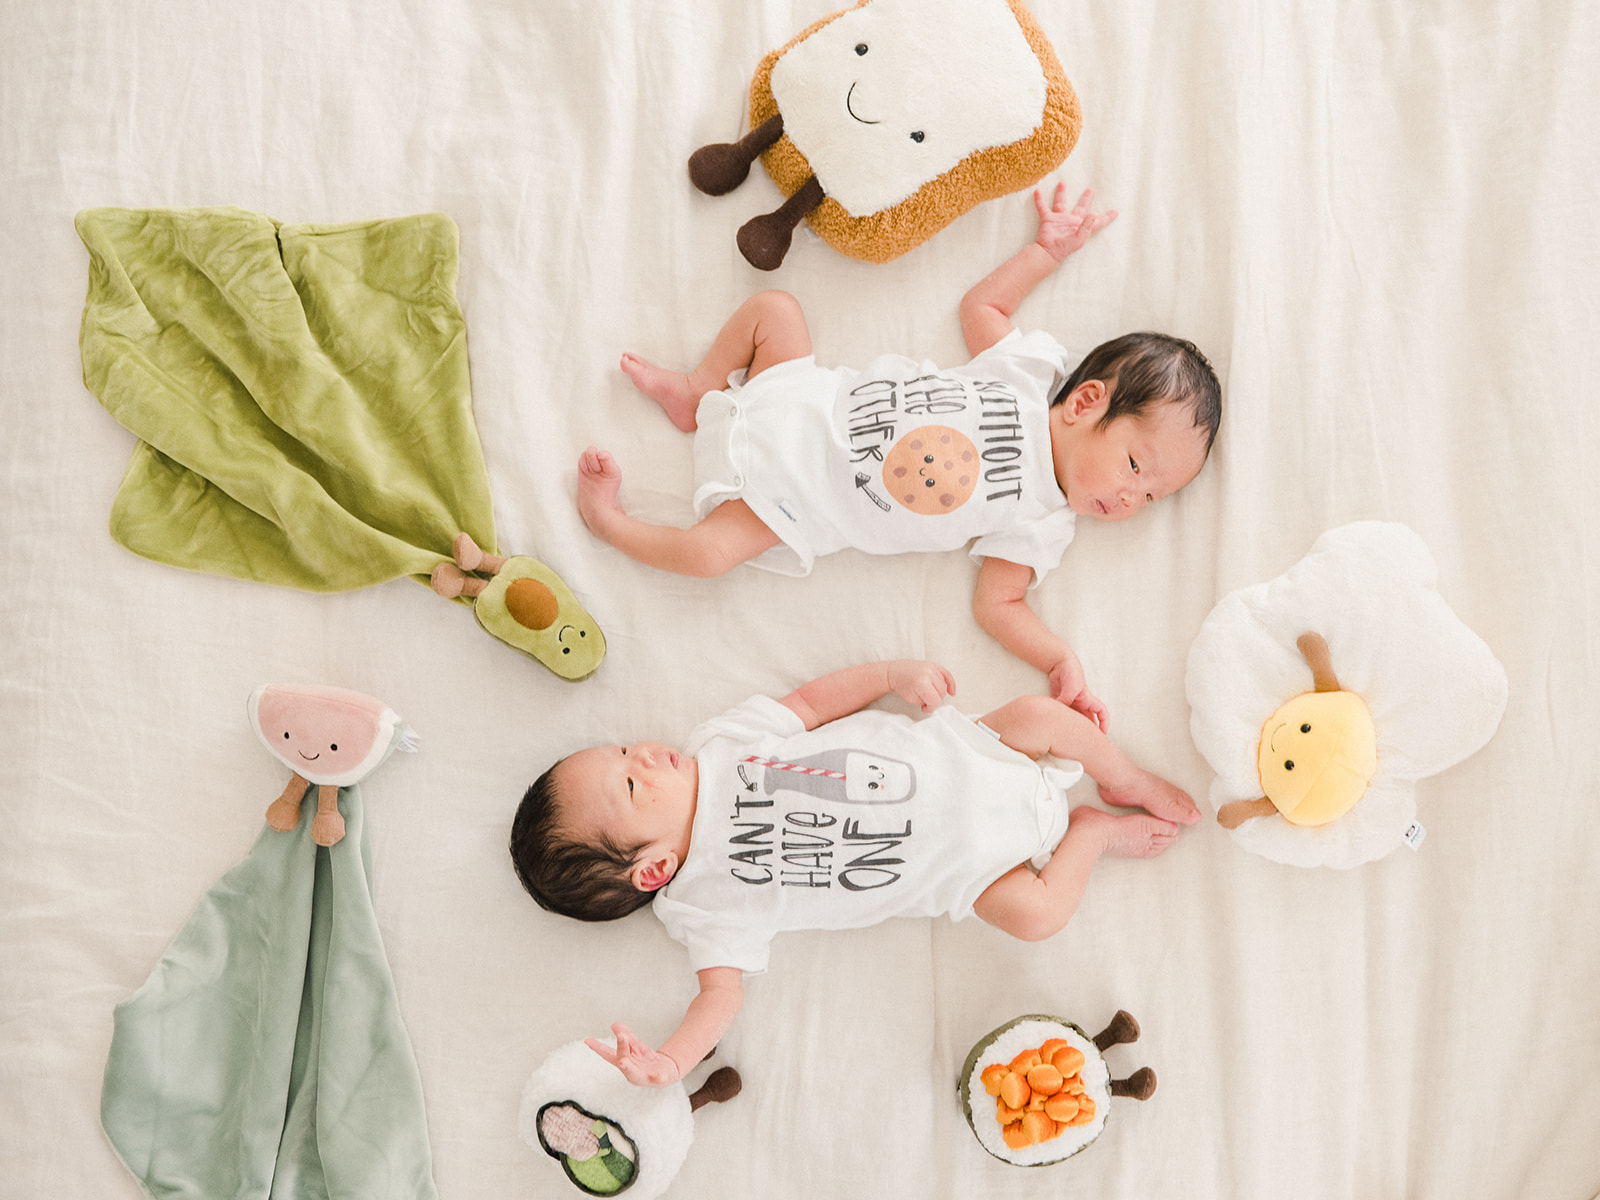 They are so small now, but they are growing so fast - even though I have taken these shots an infinite number of times, I am always amazed at how different babies look when I document their milestones for newborns, six months and one year. #newborn #photography